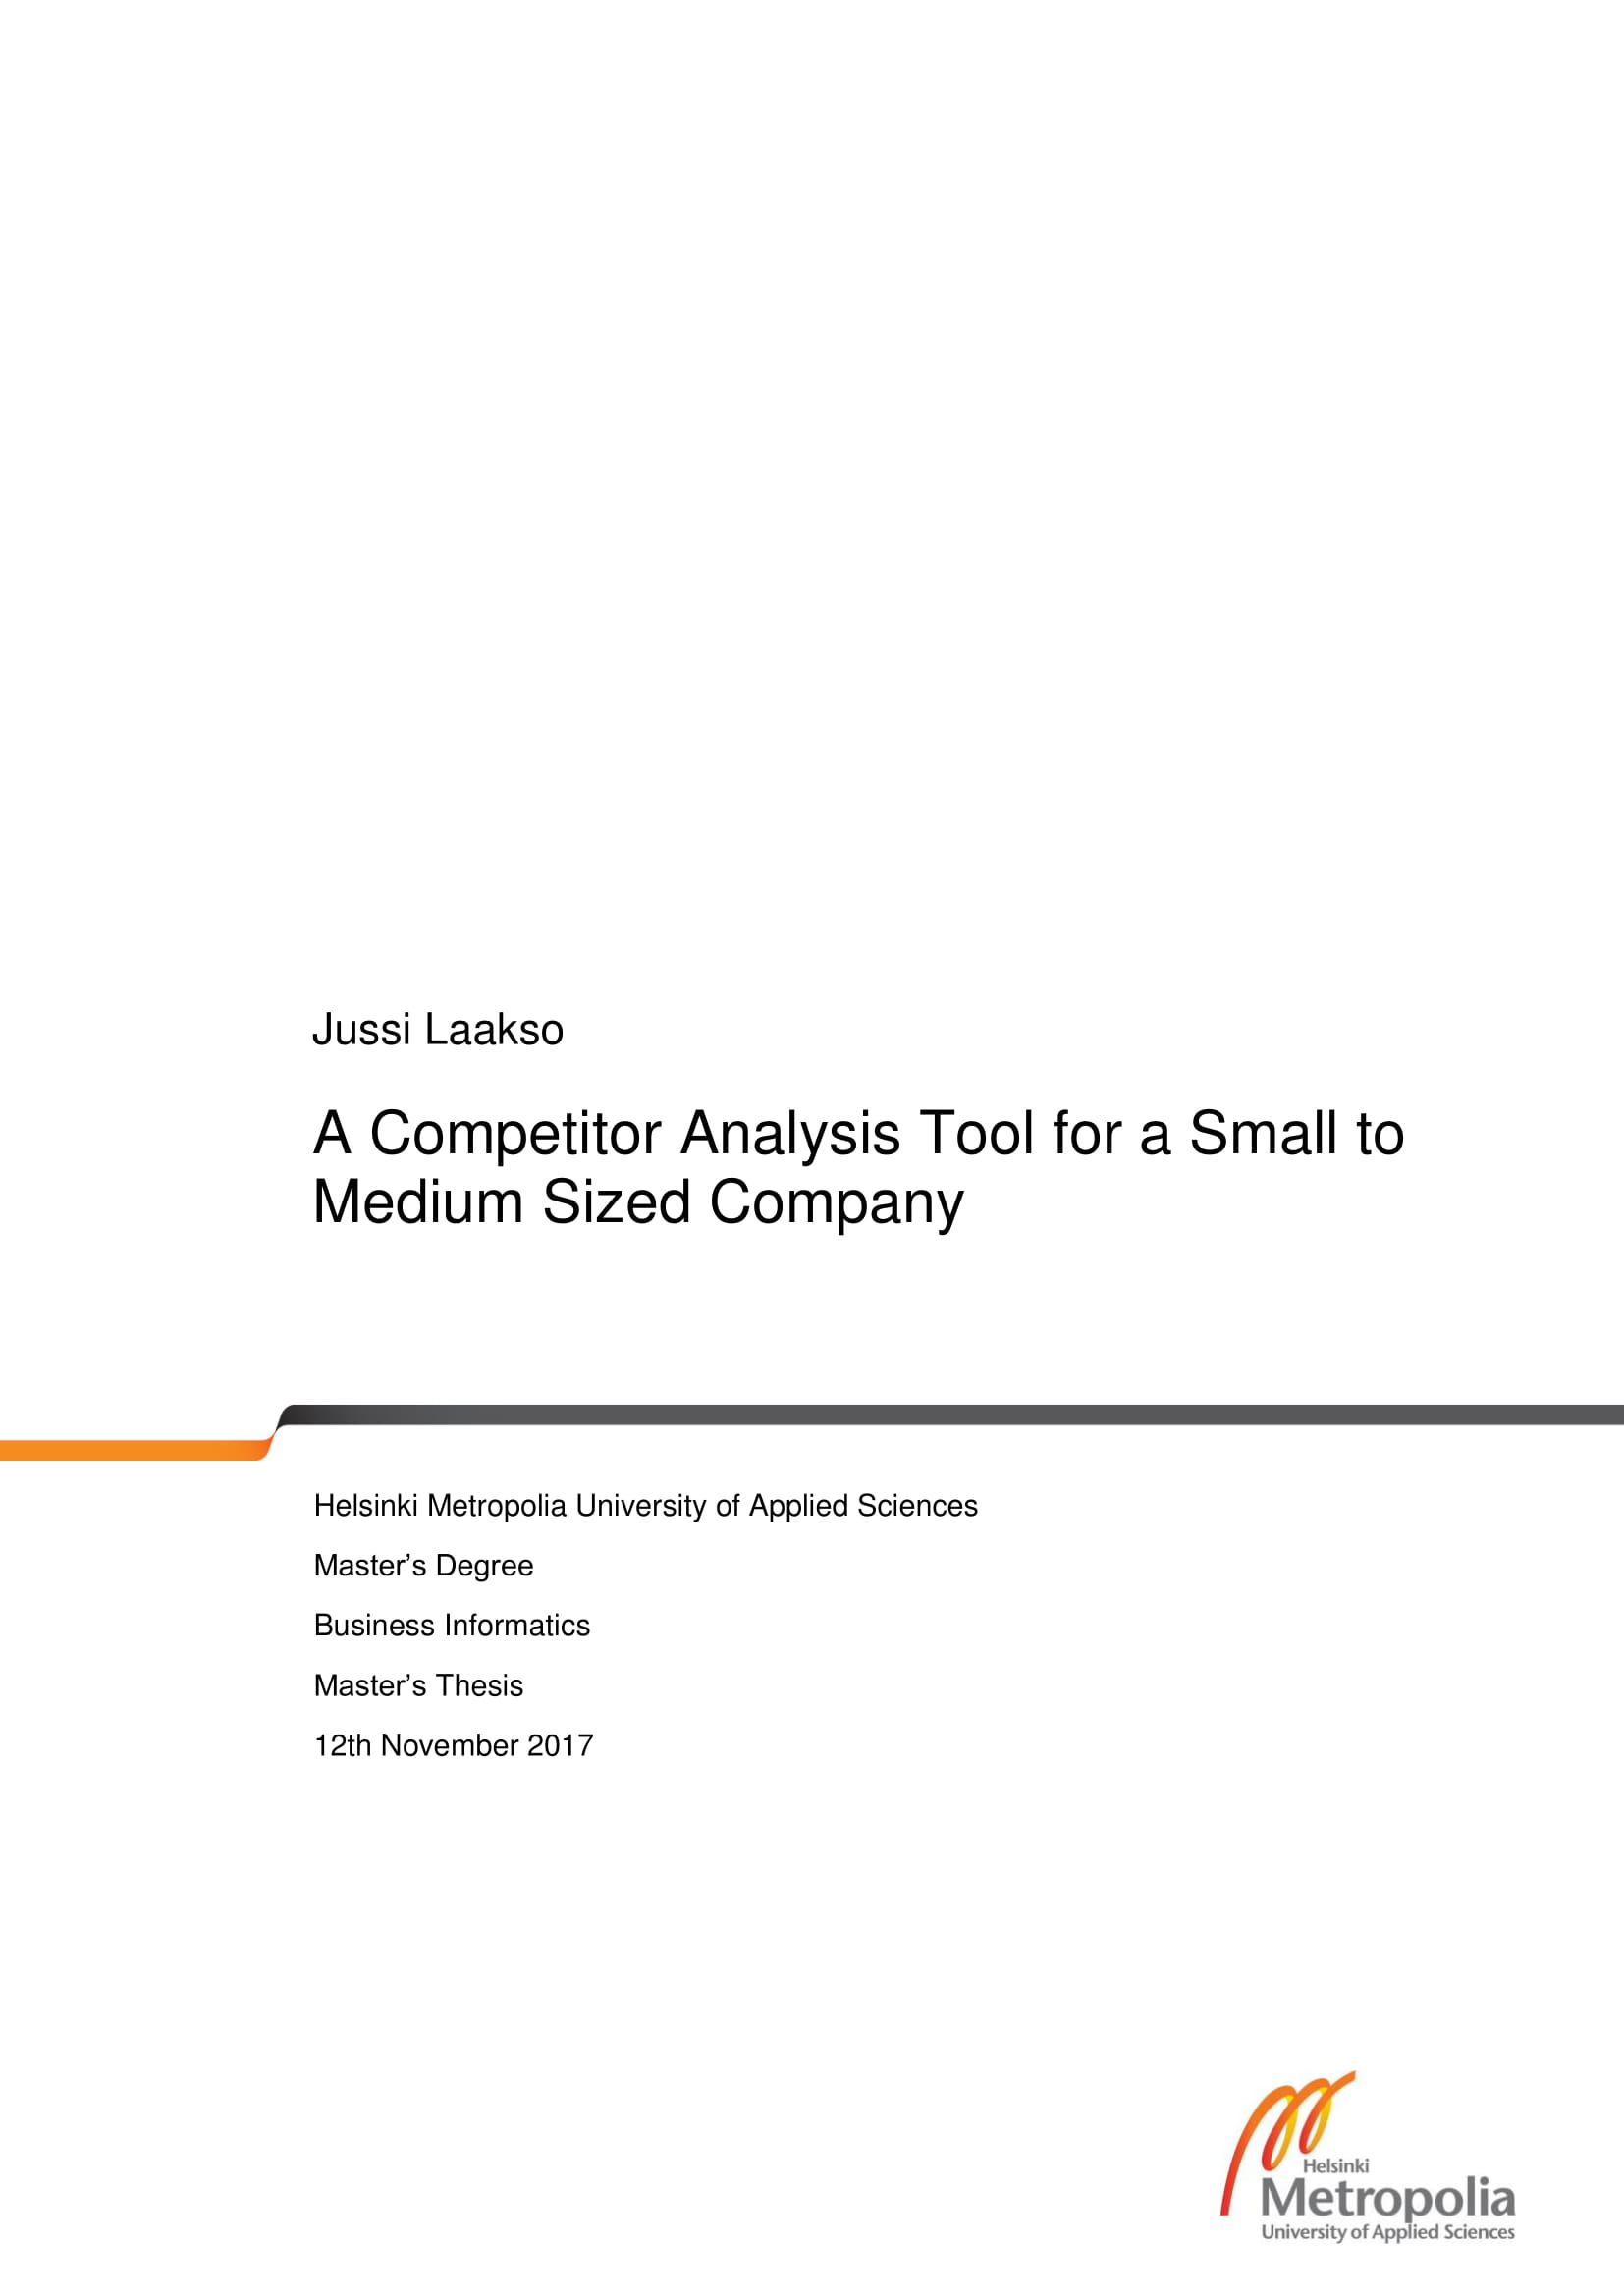 competitor analysis tool for a small to medium sized company example 01